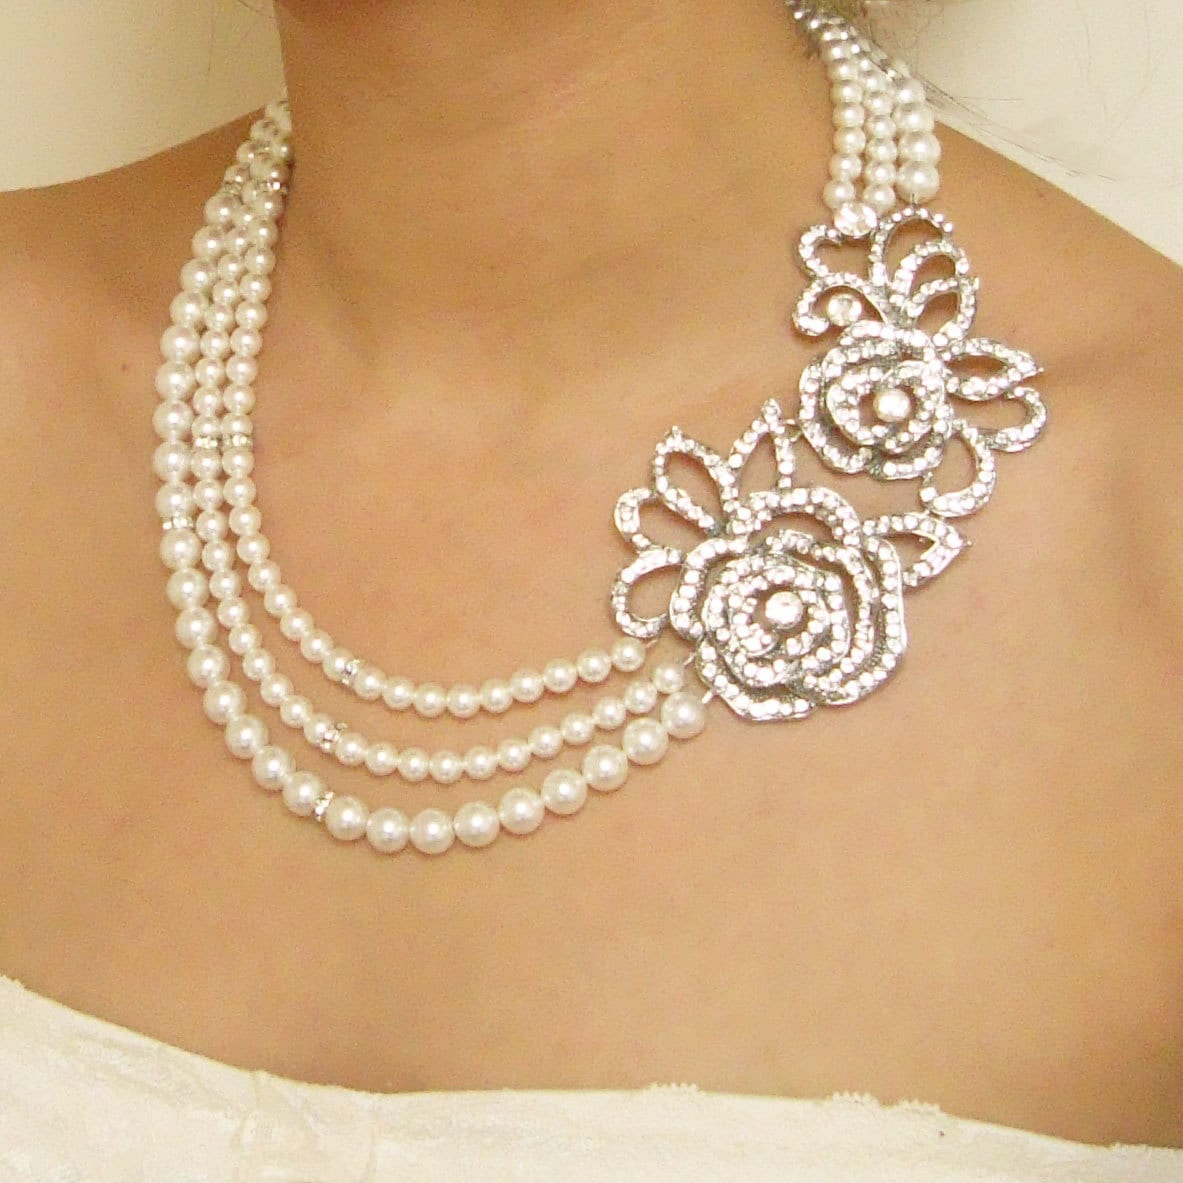 simple of necklaces l bridal wedding modscom elegant yet trendy necklace collection jewelry